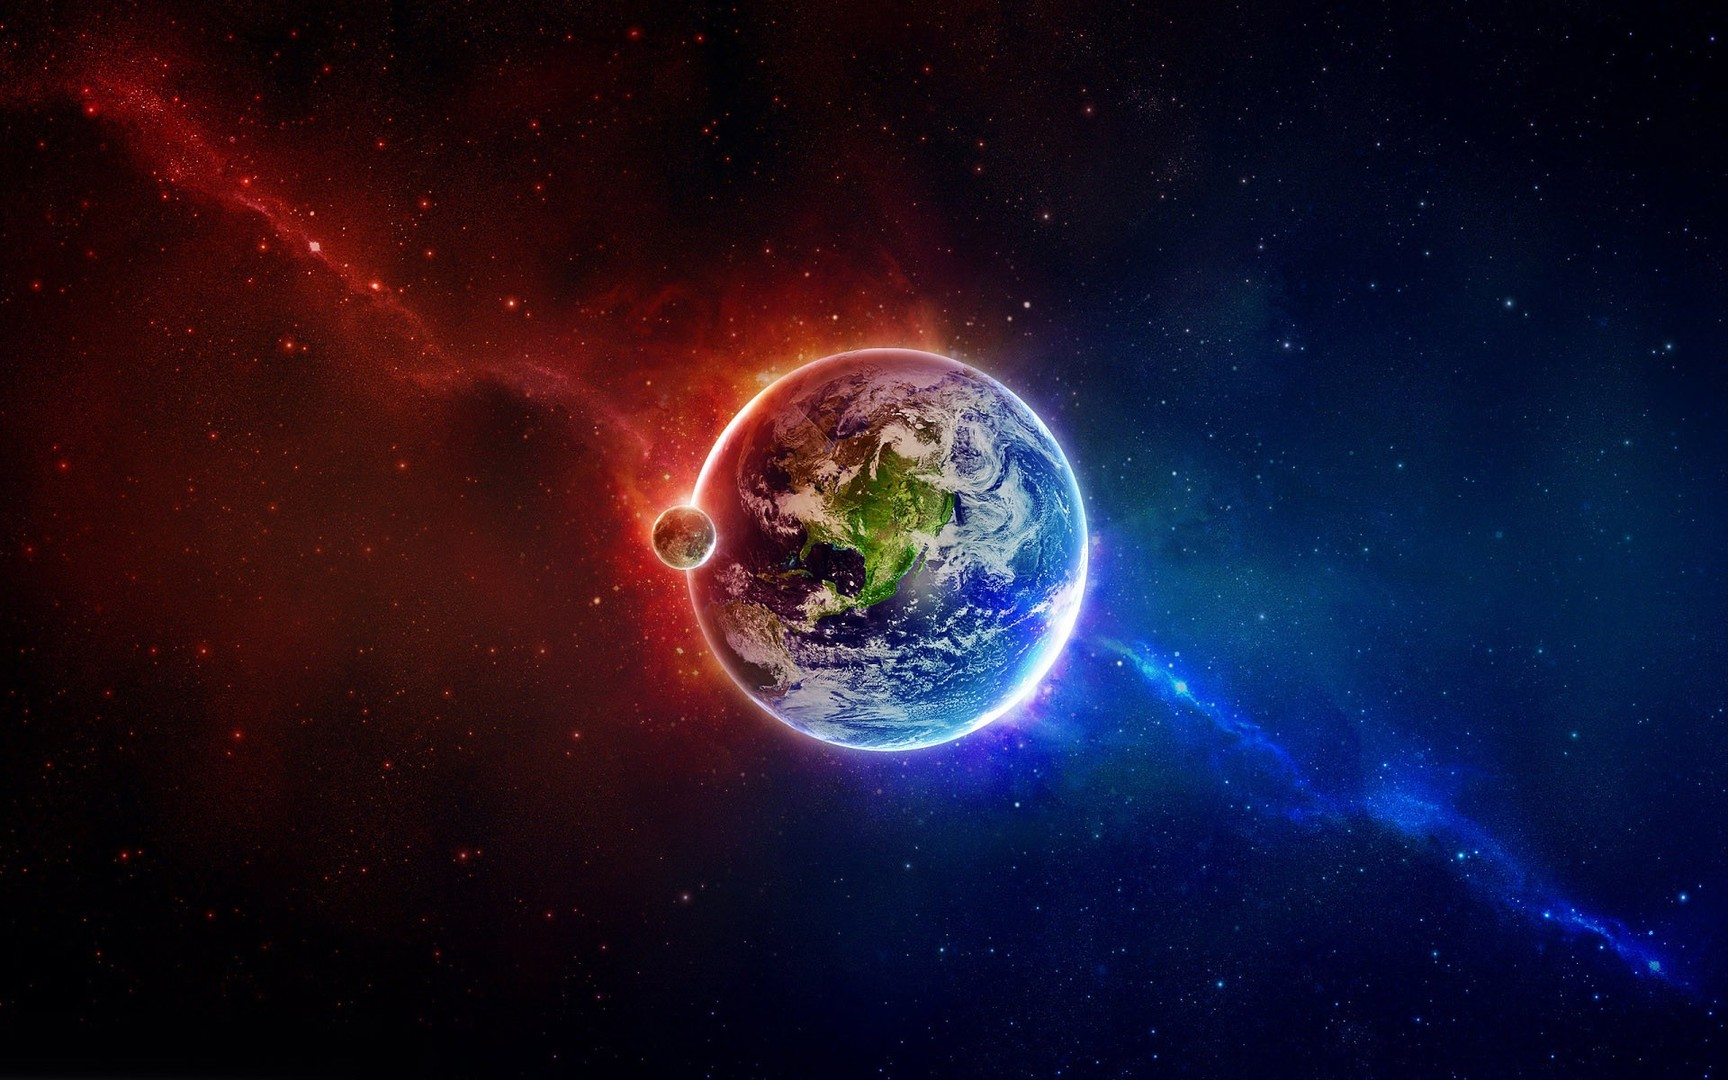 Download Earth in blue and red space wallpaper 1728x1080